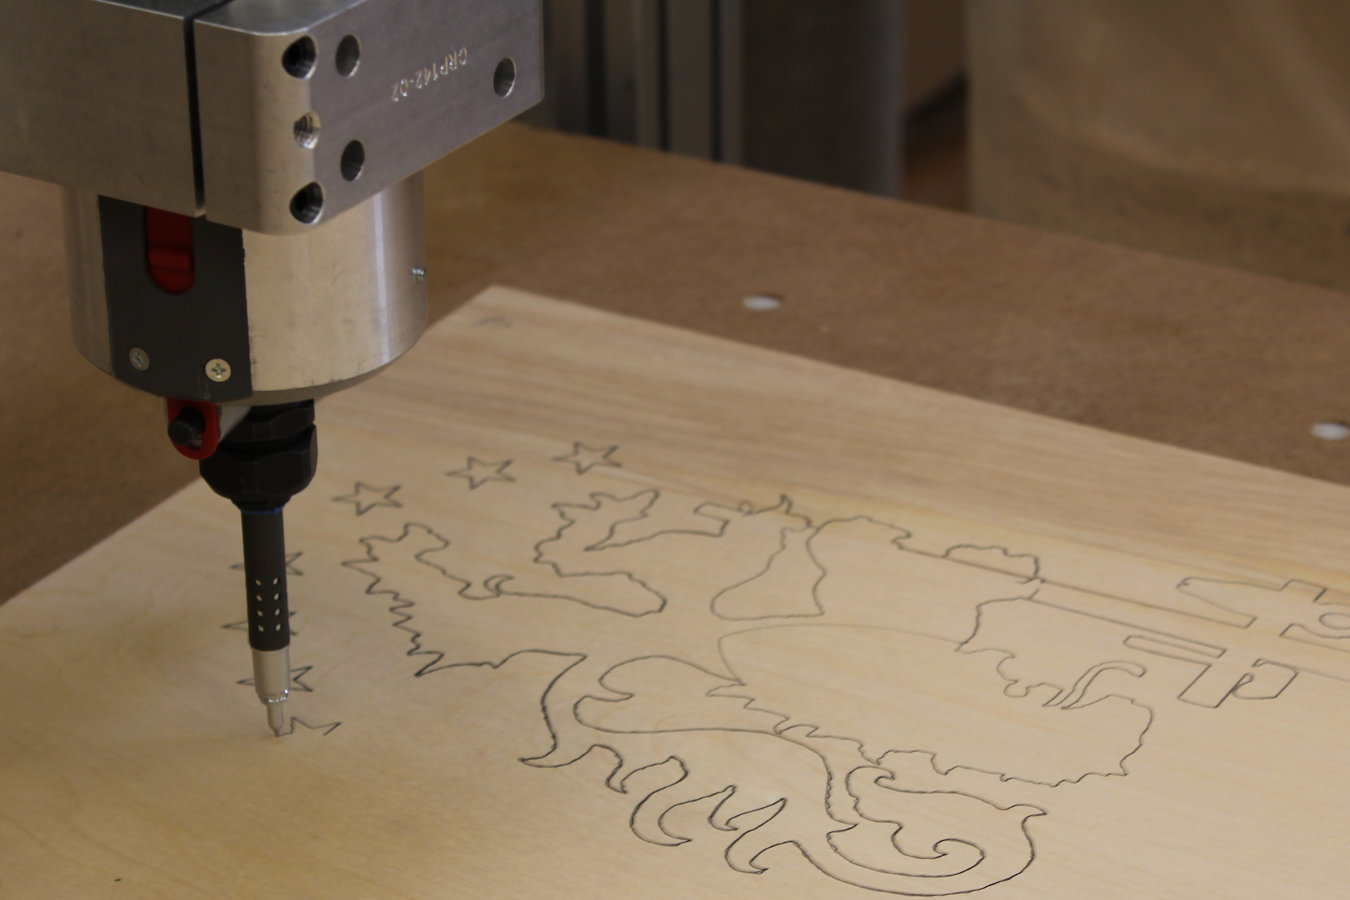 Full-sized drawings are done by using the CNC as a large scale plotter ...